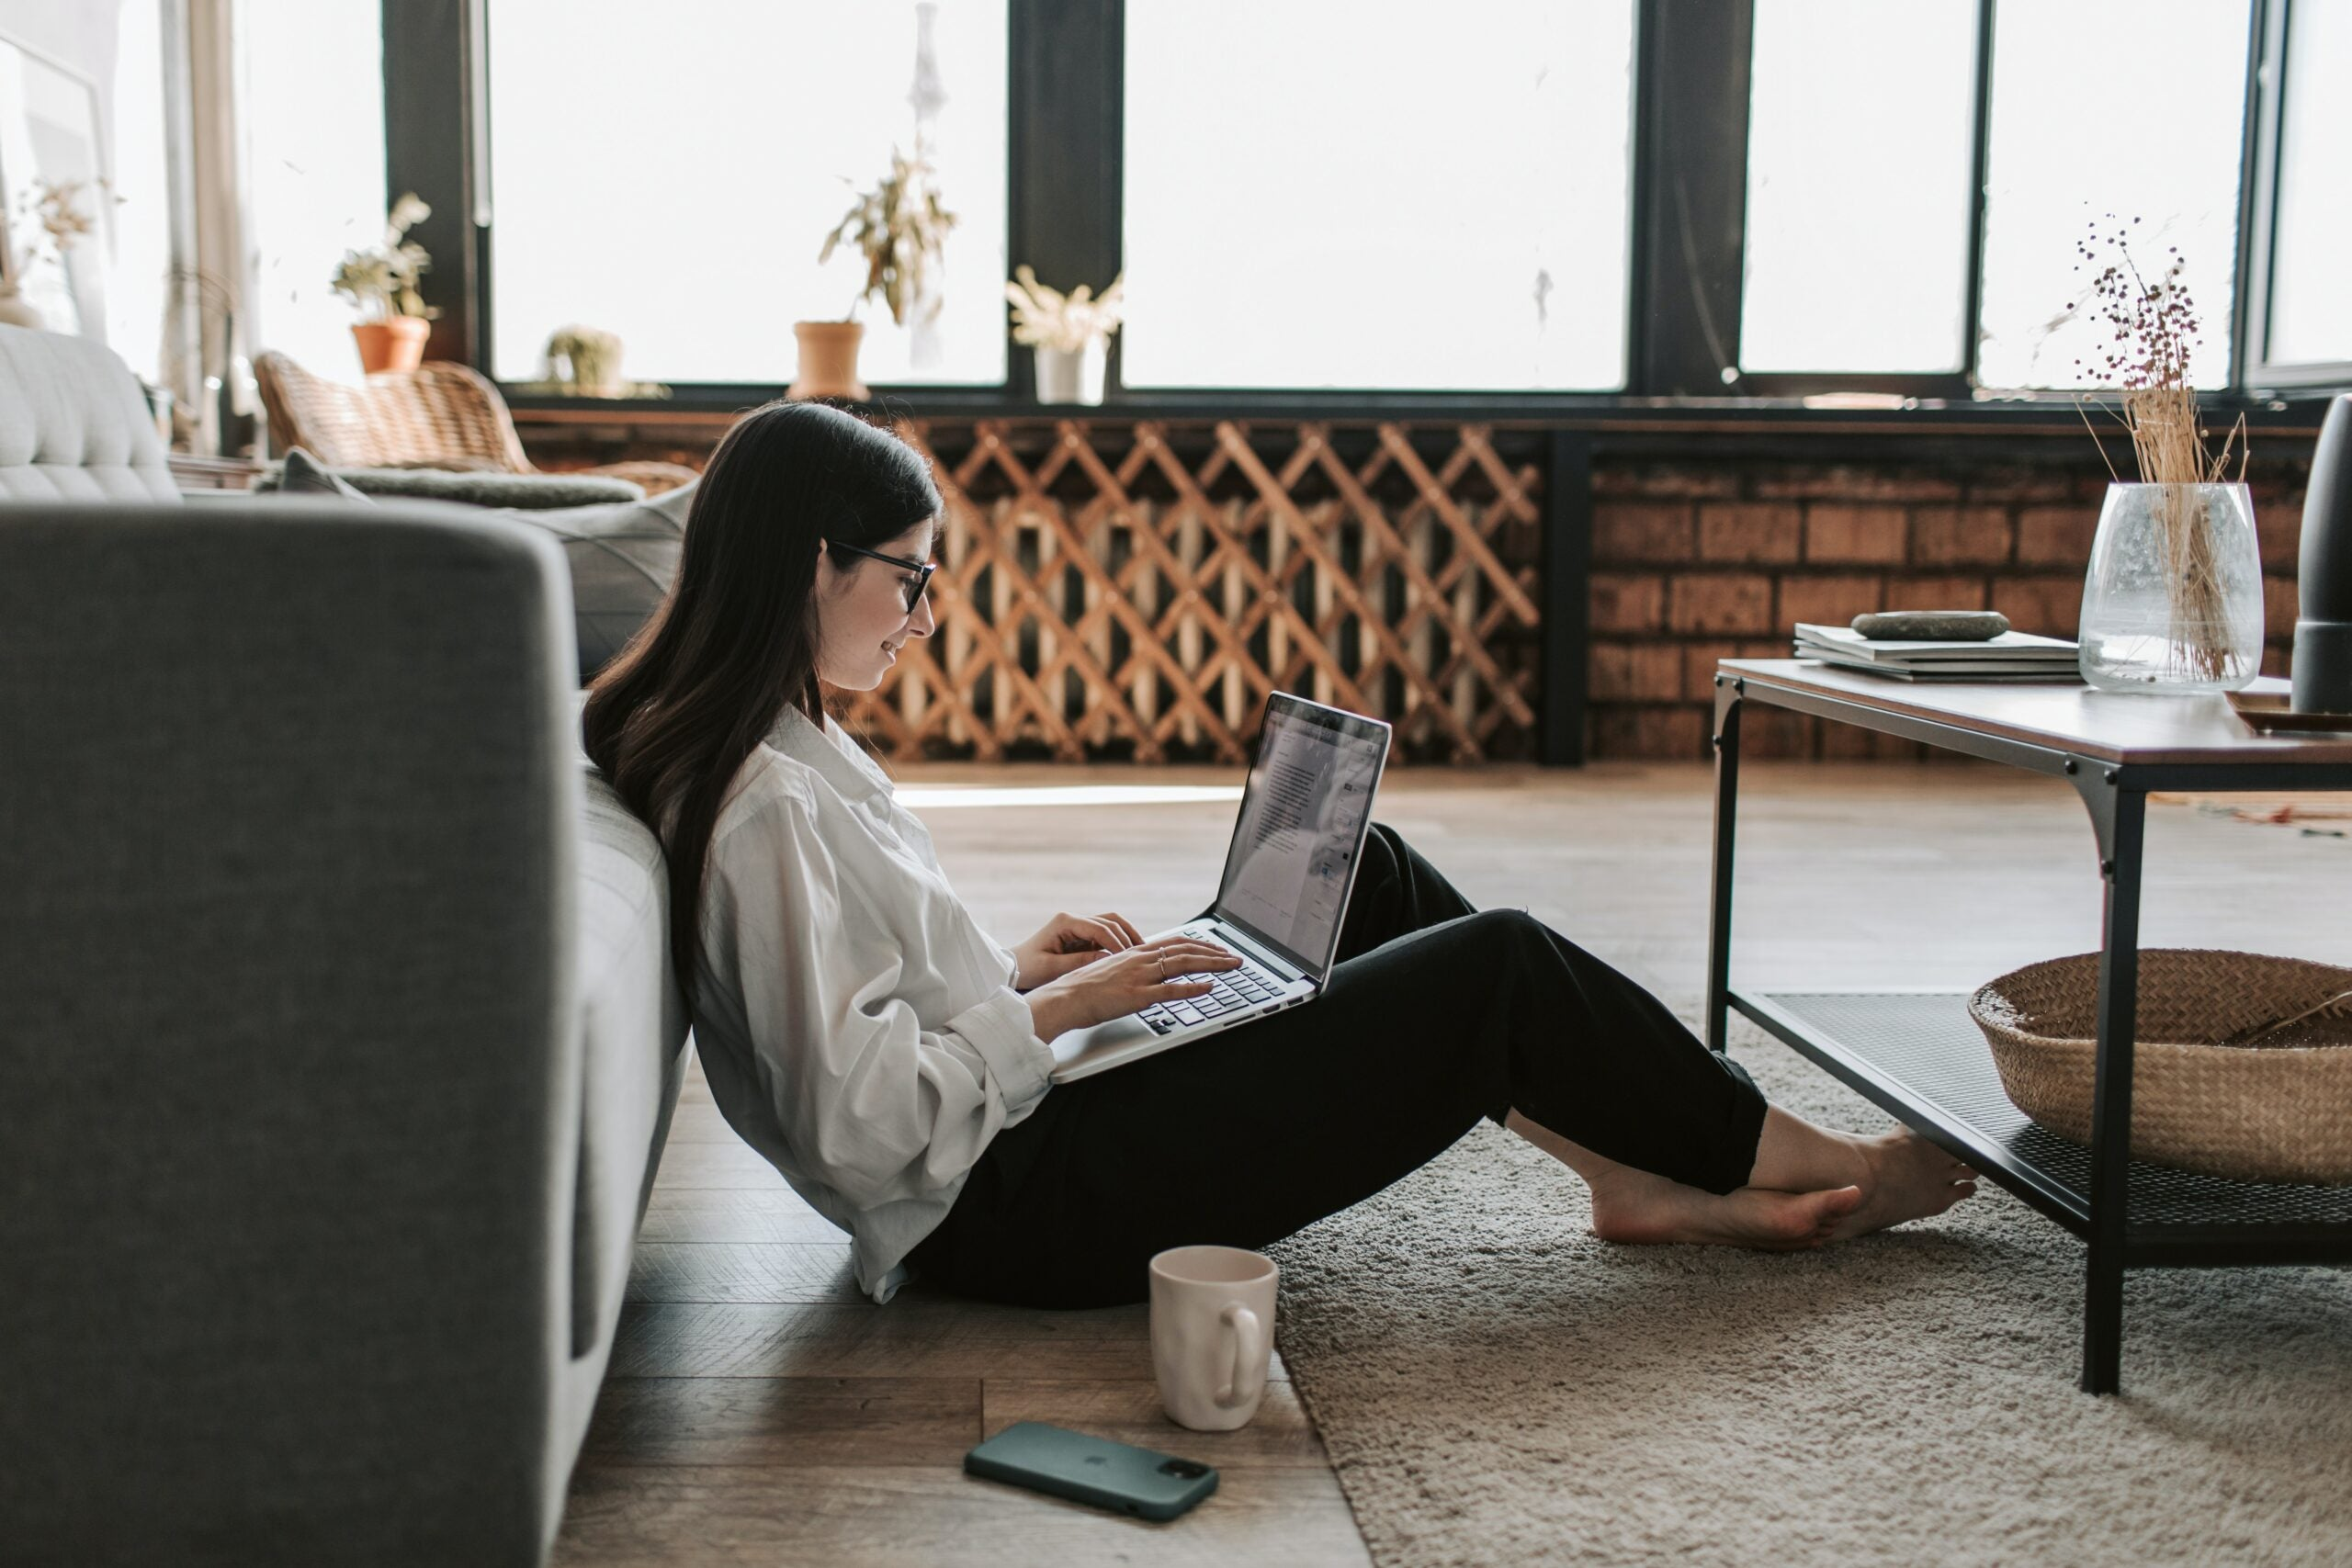 A woman working from home on the floor.